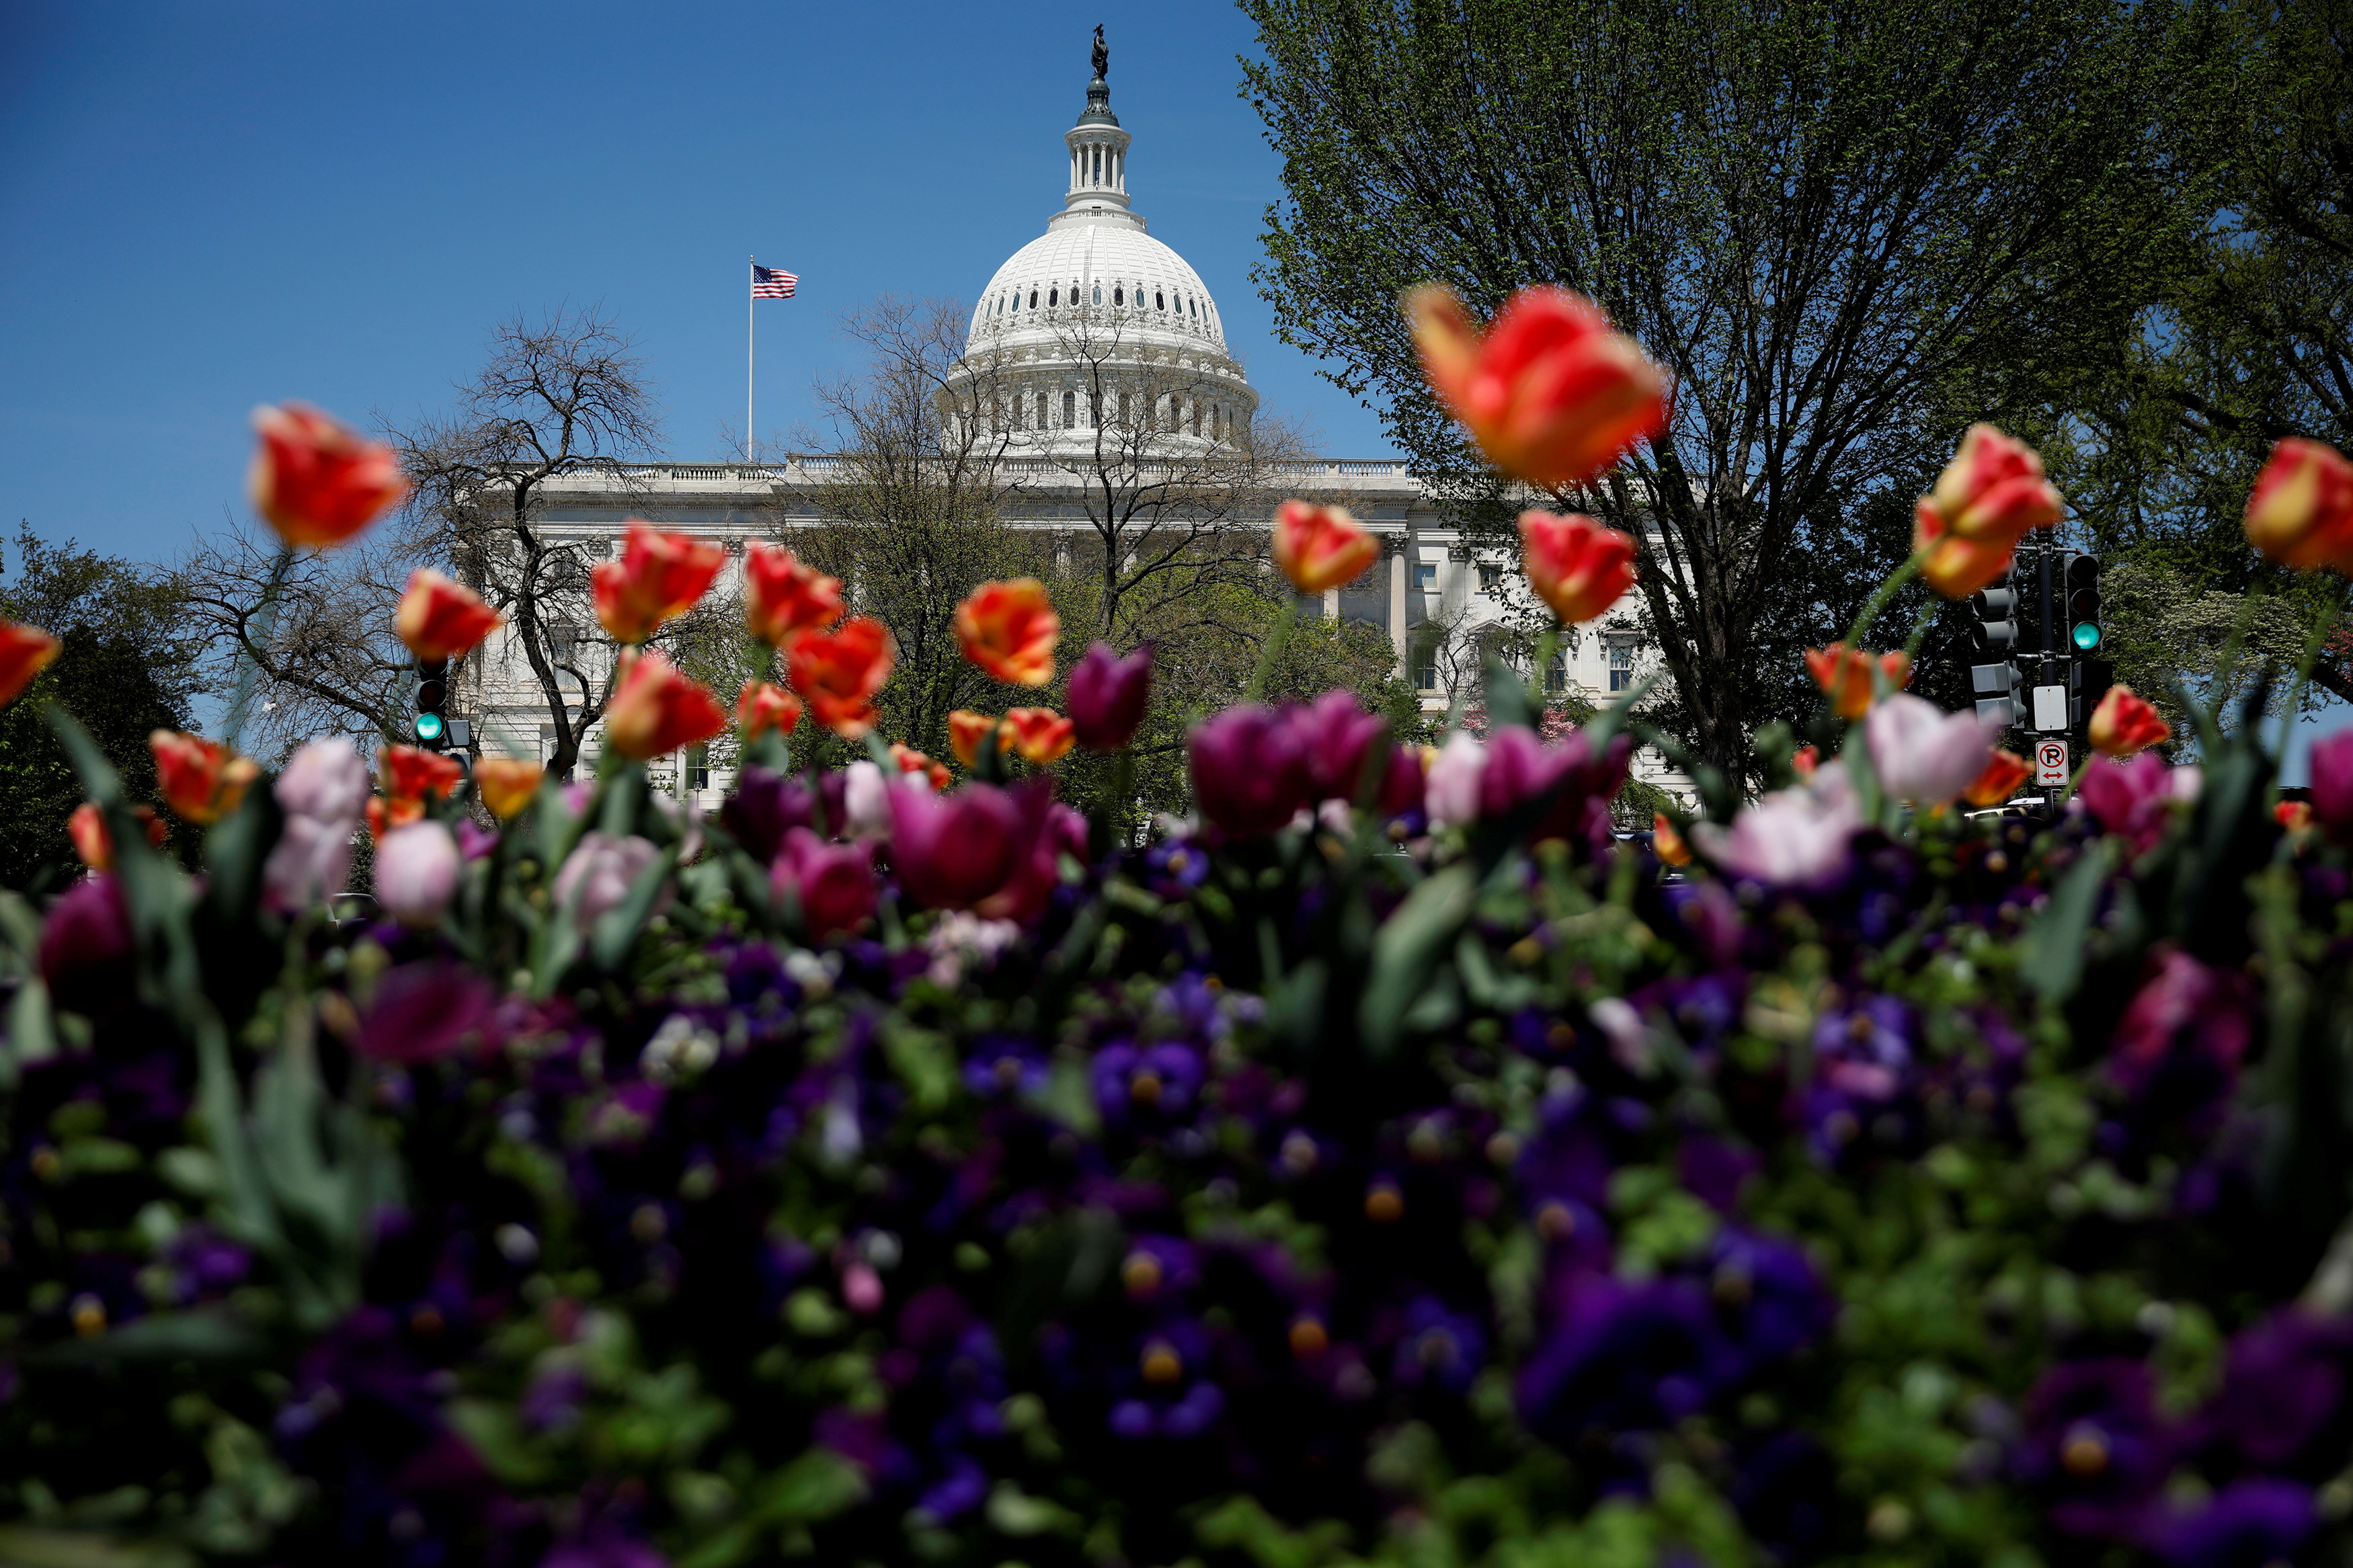 The Capitol dome is seen amongst blooming flowers in Washington, U.S., April 26, 2018. REUTERS/Aaron P. Bernstein